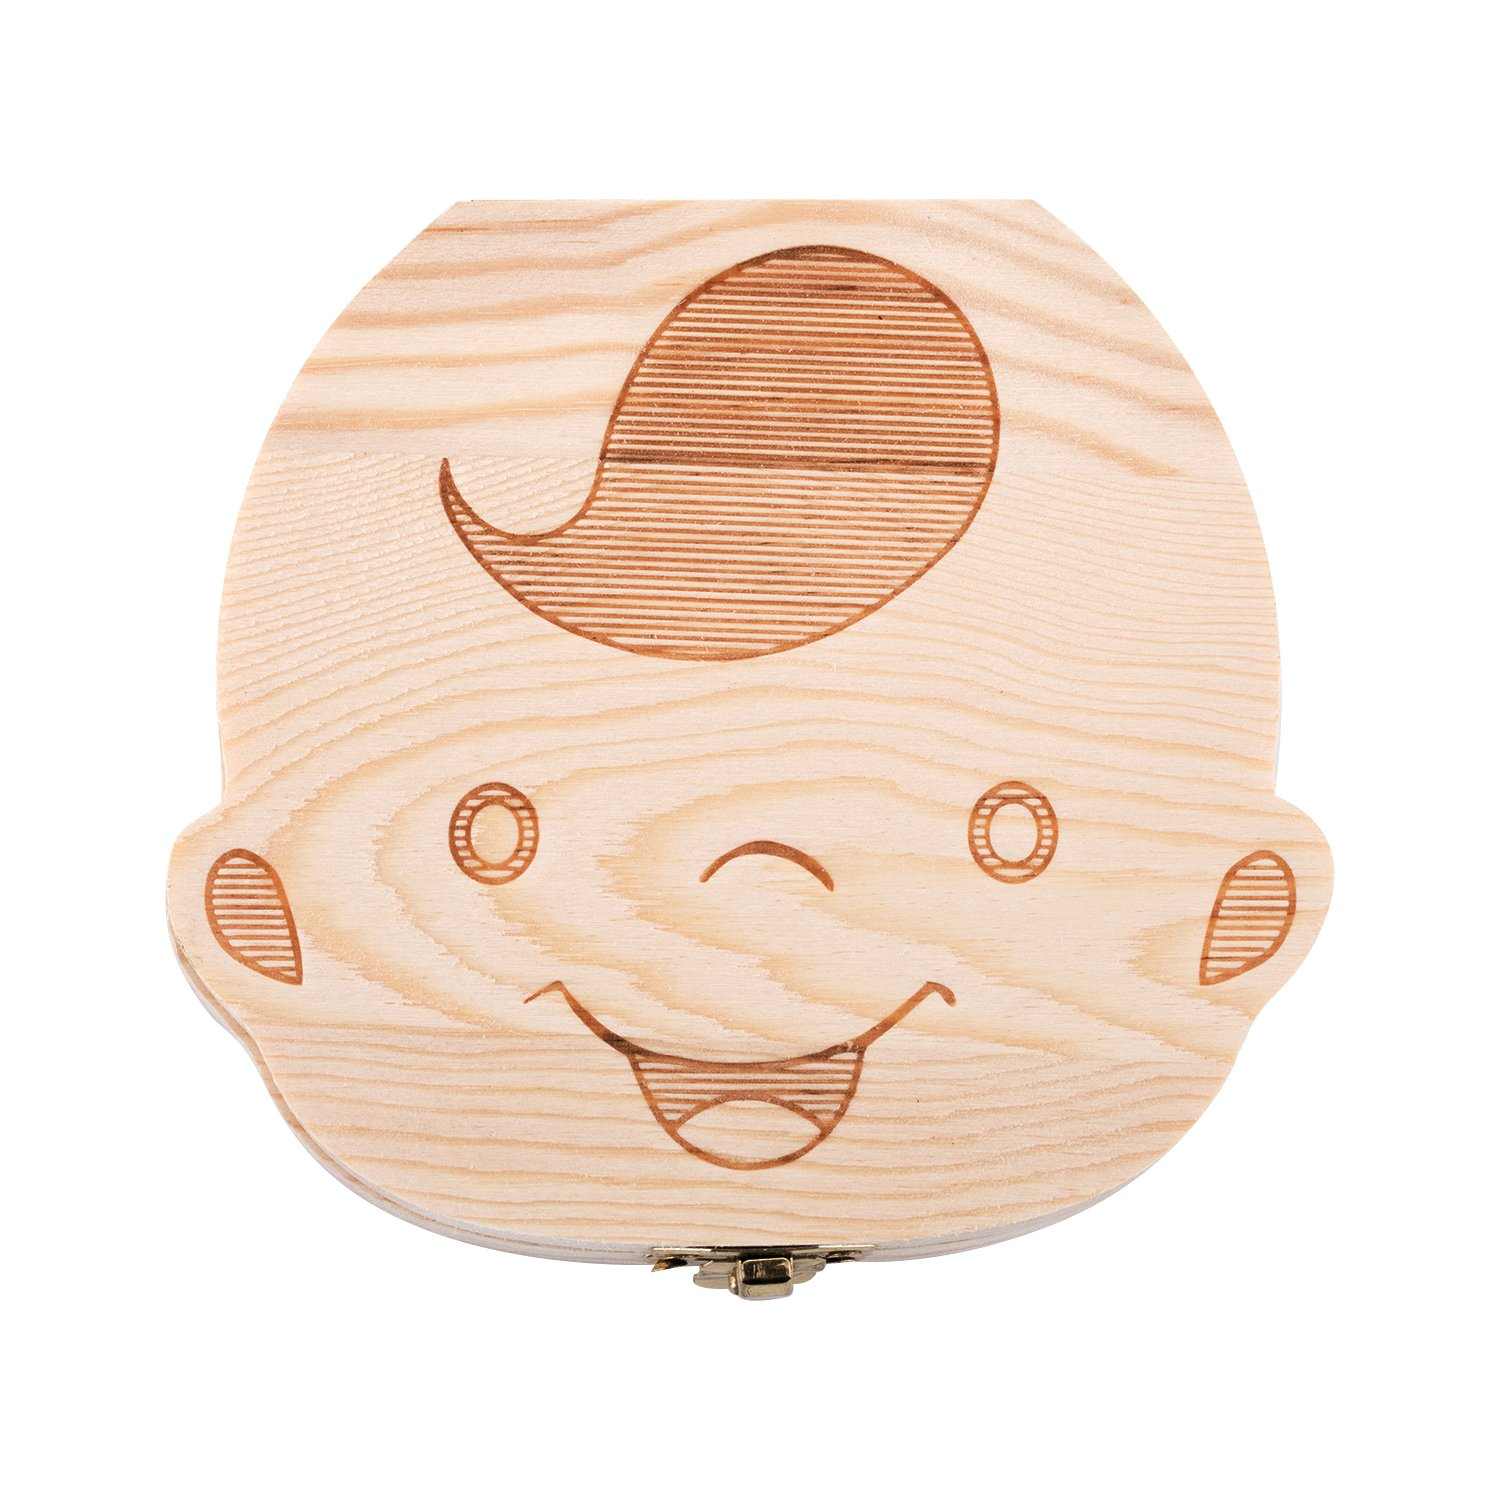 Tooth Box,Personality Baby Teeth Box Tooth Saver Design for Kids Deciduous Teeth Collection. CampTek